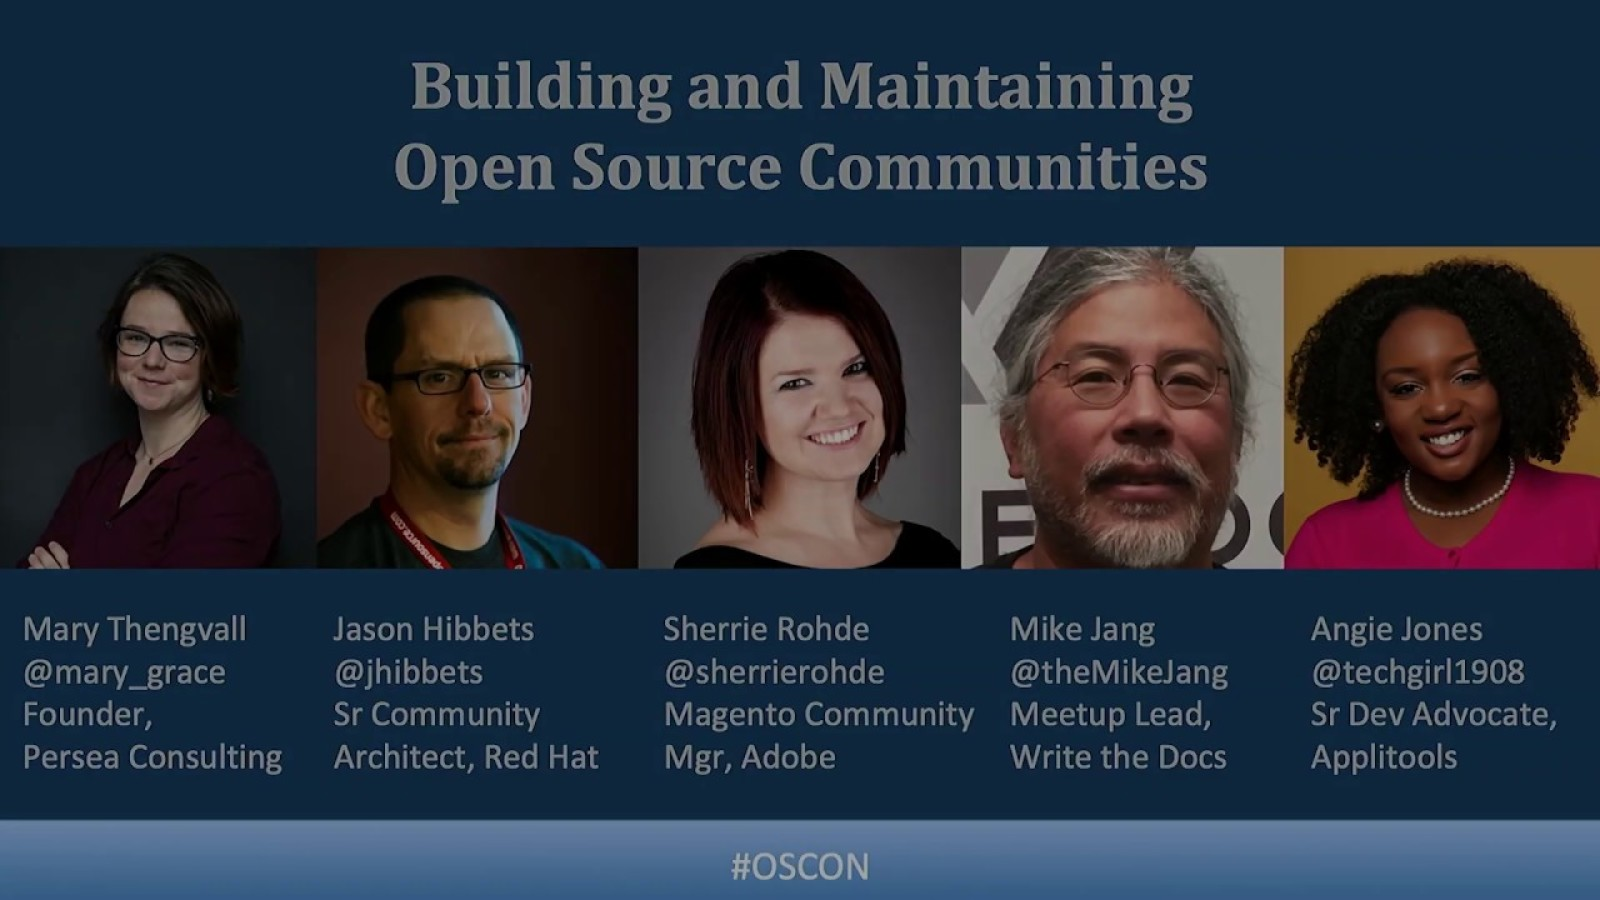 Building and maintaining open source communities